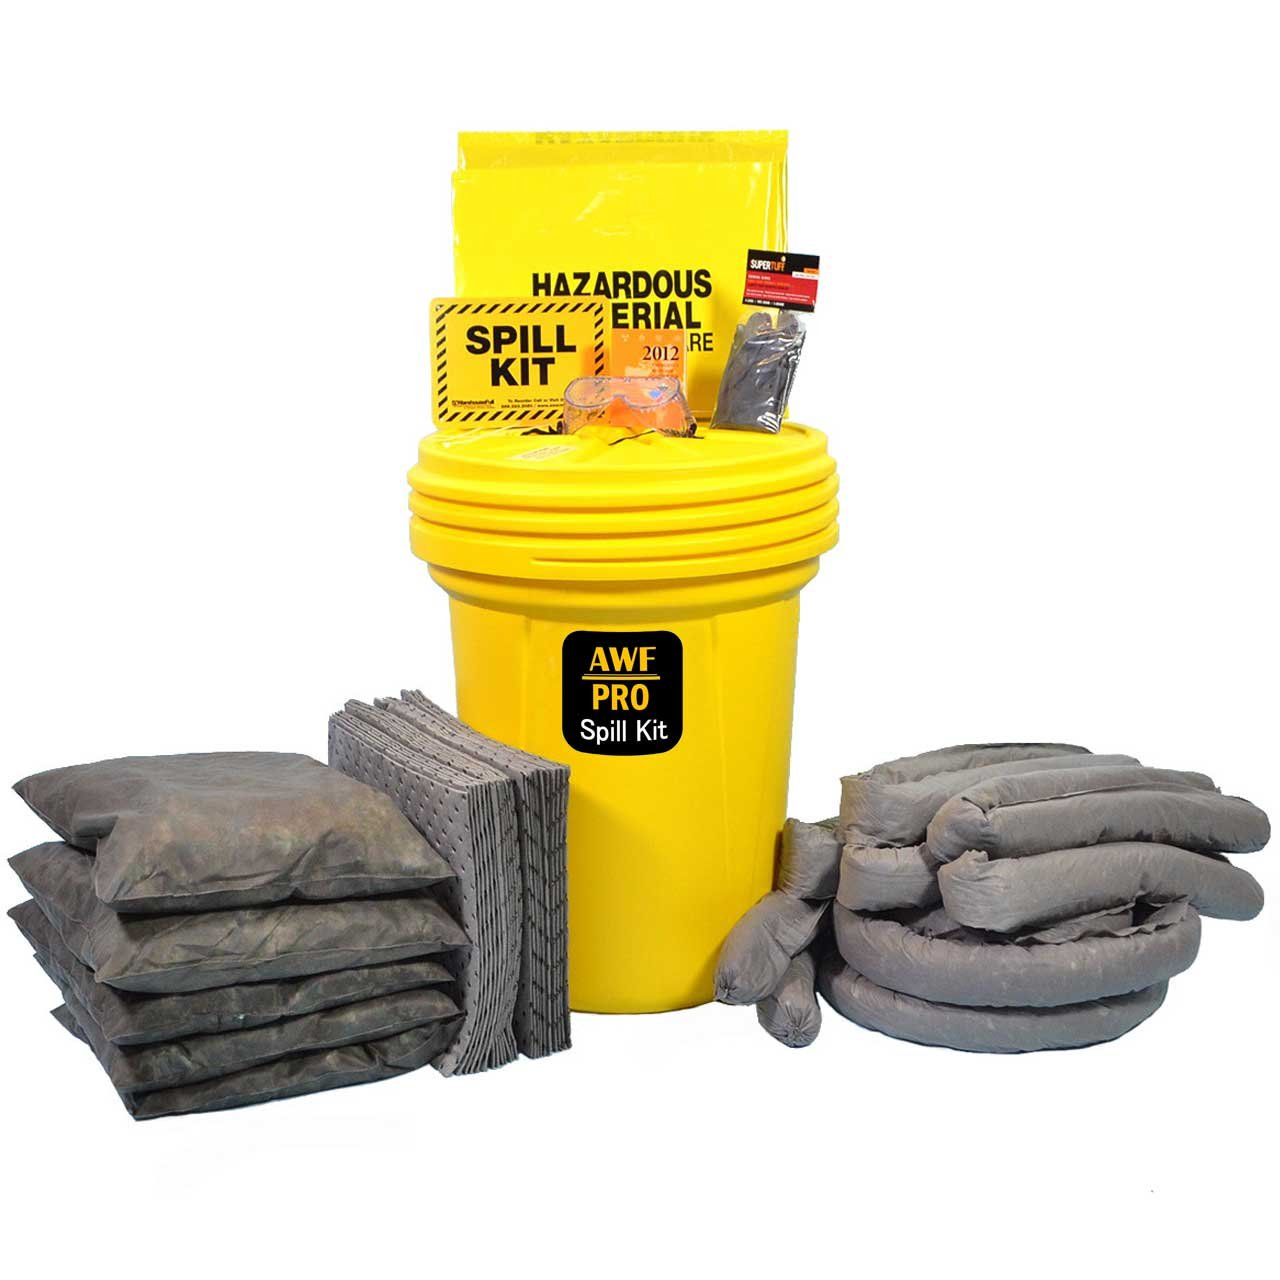 30 Gallon Universal Spill Kit Includes Overpack Drum,25 Spill Pads 15''x19'',2 Socks 3''x12',5 Socks 3''x4',5 Pillows 18''x18'', Safety Goggles, Chemical Gloves, Response Guidebook, Disposal Bag, spill sign